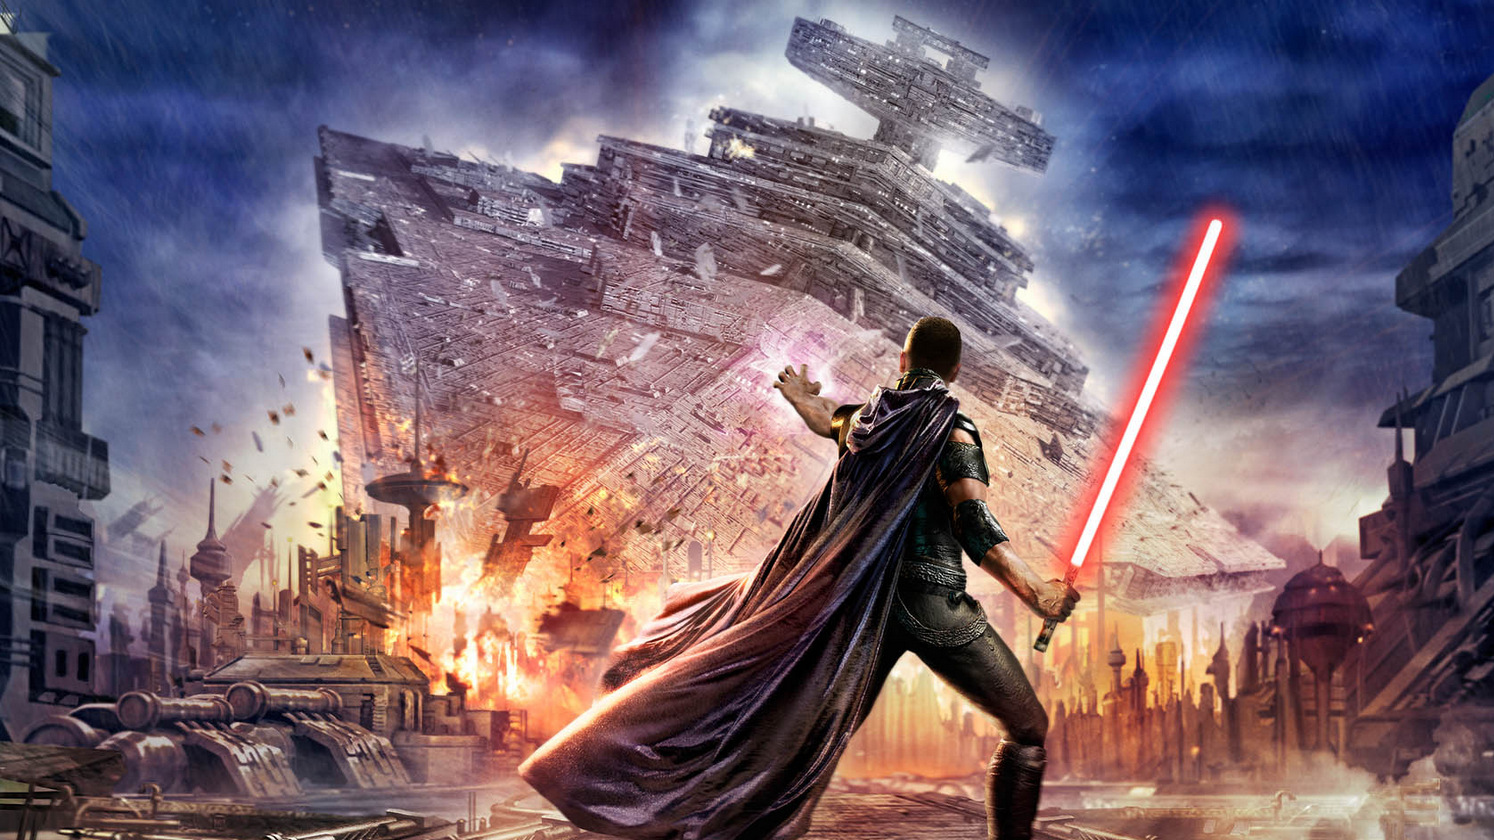 Star Wars humble bundle (3)